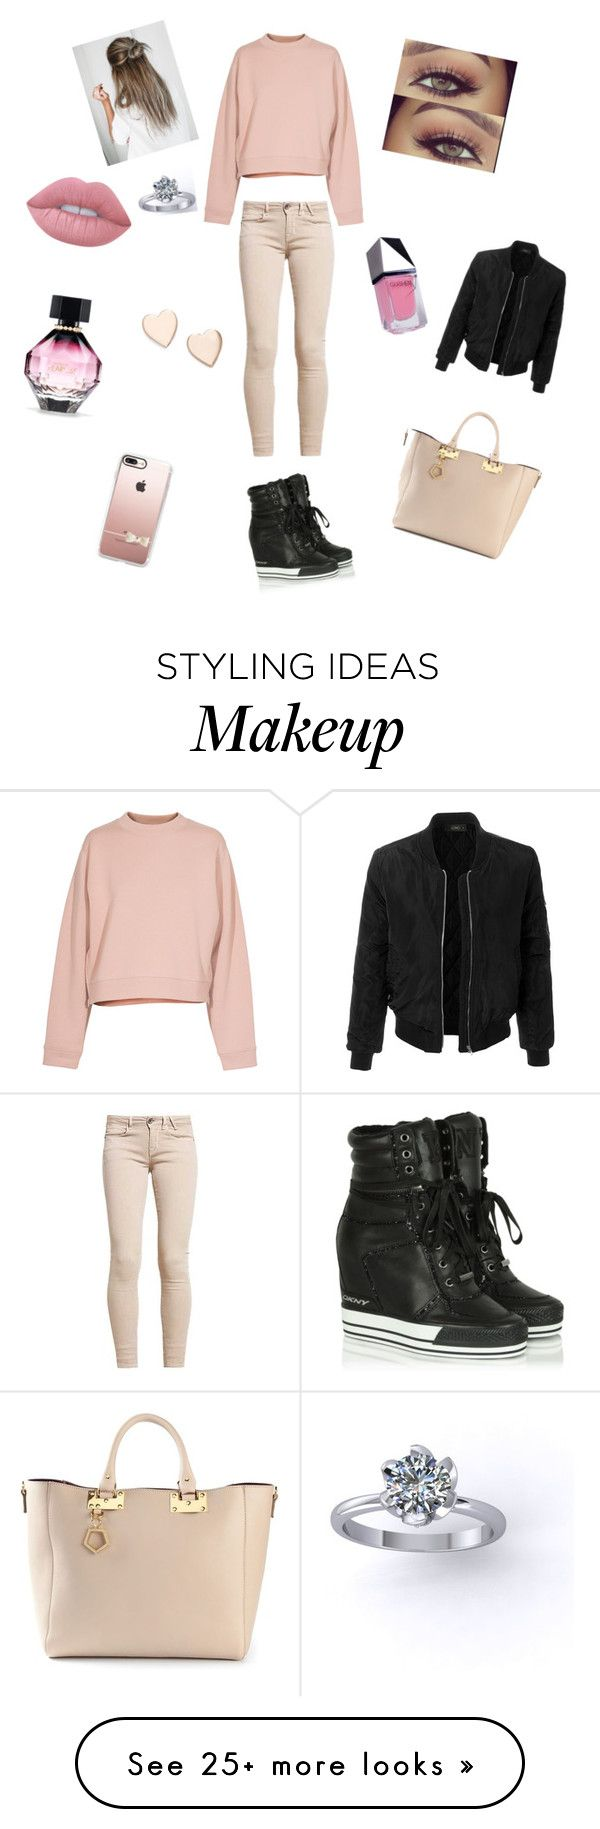 """""""Basic winter look❄️"""" by noavdbergex on Polyvore featuring Acne Studios, DKNY, Lime Crime, Sophie Hulme, Casetify, Poppy Finch, Victoria's Secret, LE3NO and GUiSHEM"""